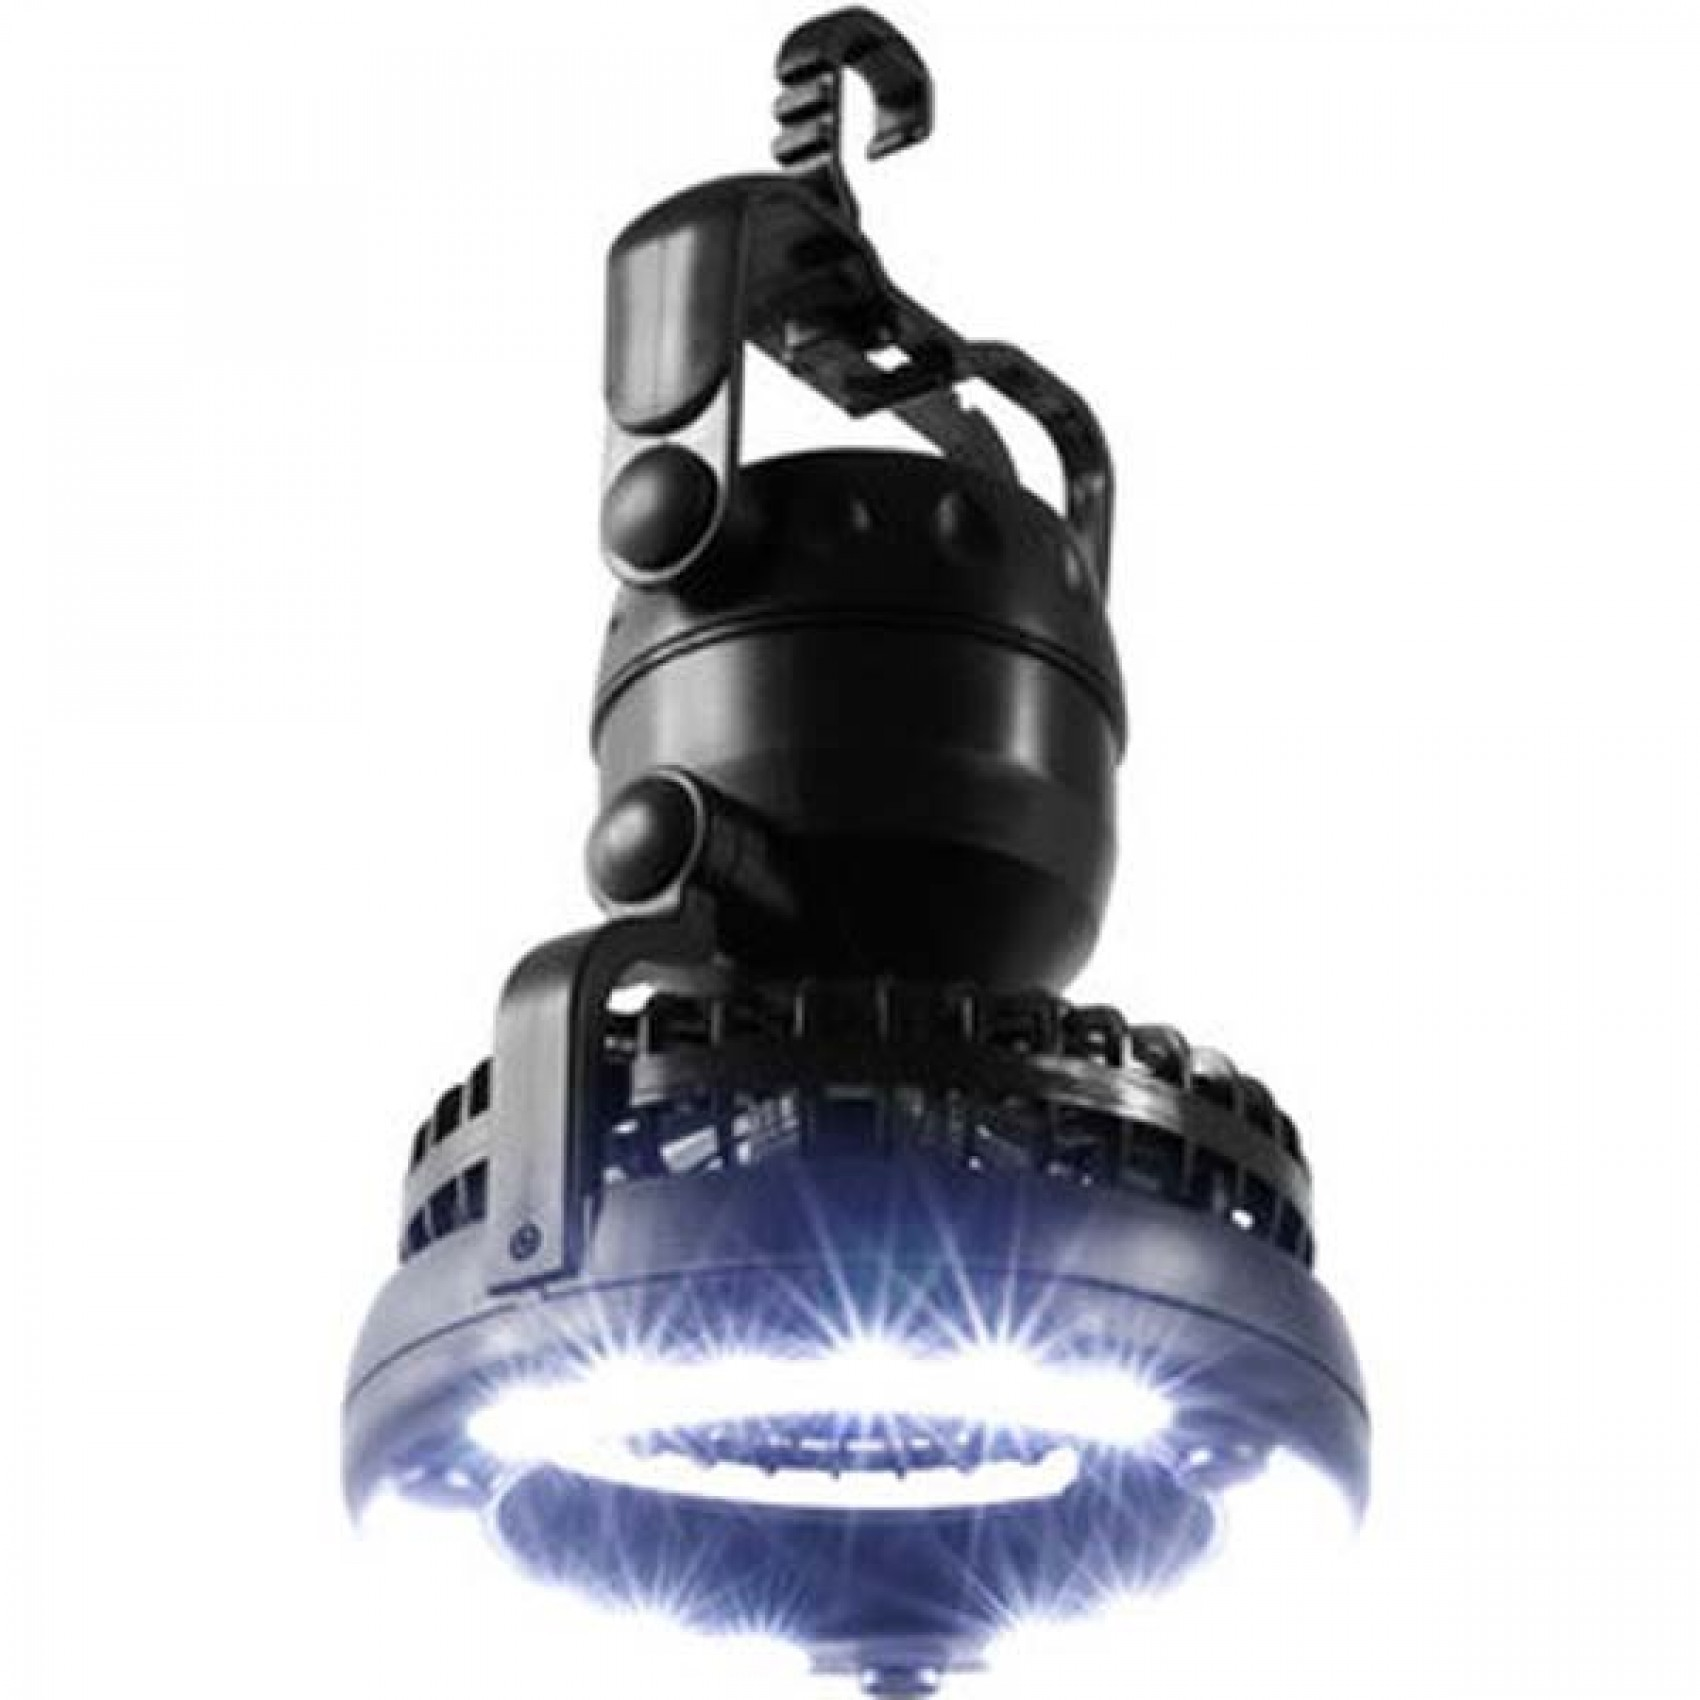 2 in 1 Rechargeable Outdoor Camping Led Light With Ceiling Fan